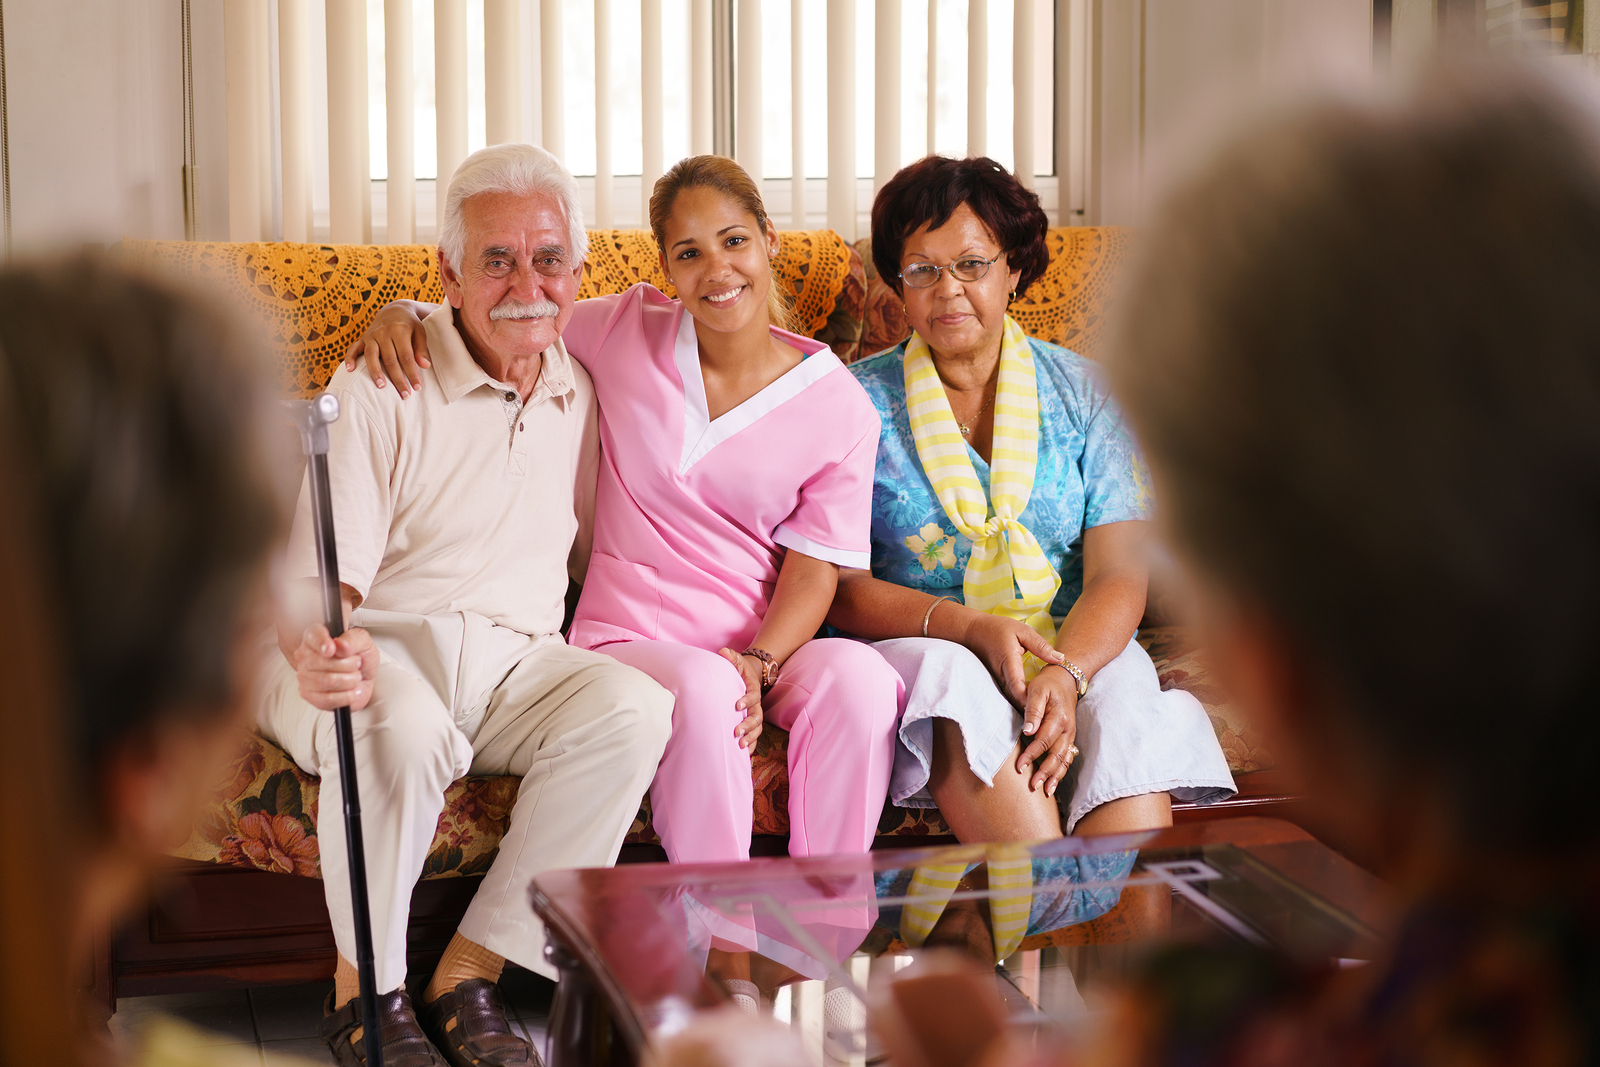 Caregivers in Philadelphia: Family Caregivers Need a Break Too.